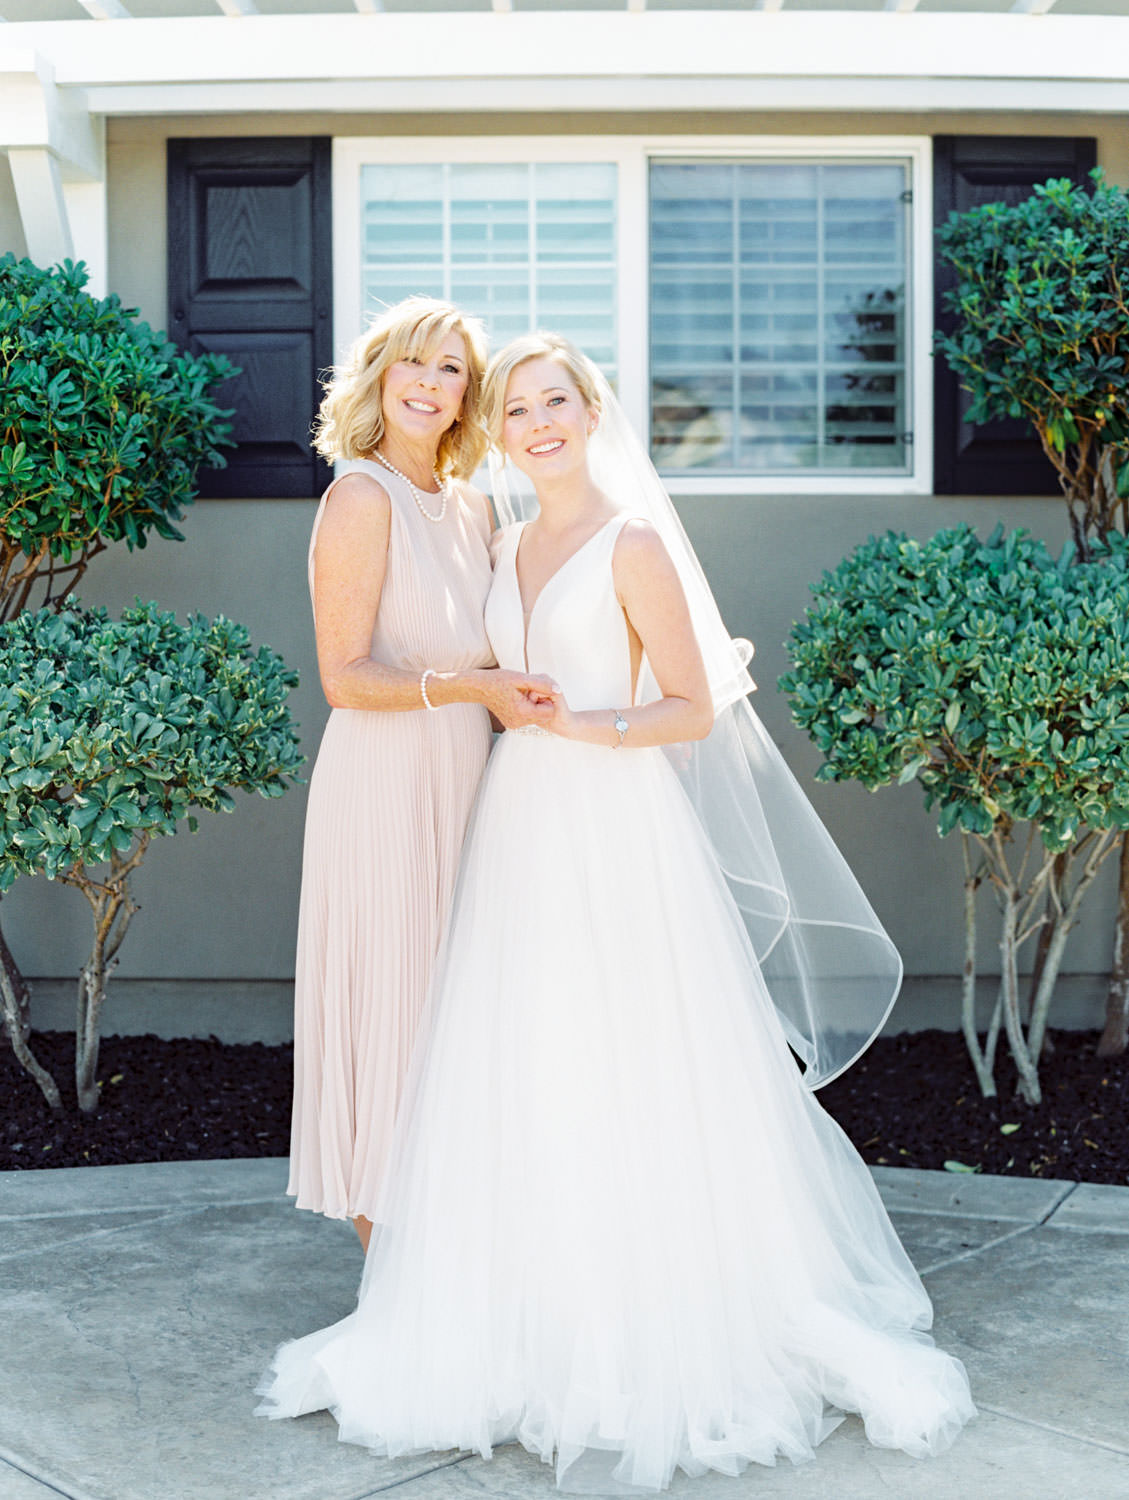 Bride in Stella York gown and veil with her mother in a blush cocktail dress. Estancia La Jolla wedding shot on film by Cavin Elizabeth Photography. San Diego wedding shot on film by Cavin Elizabeth Photography